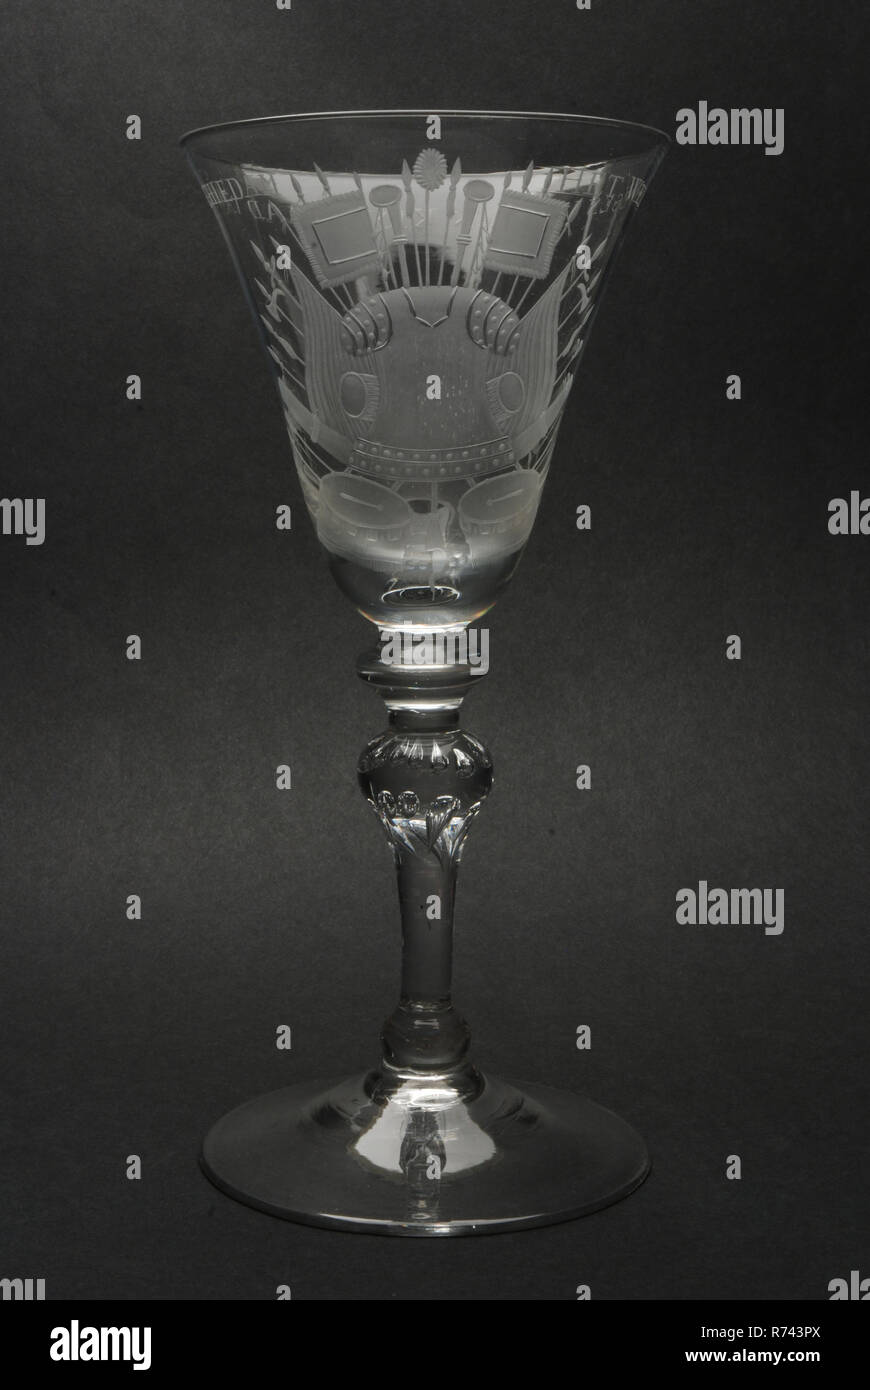 Goblet engraved with militaria and The well-being of the Krygsraad of Schiedam, wine glass drinking glass drinking utensils tableware holder lead glass glass, gram free blown and shaped radgraving polishing goblet wineglass in clear colorless lead pane Pontil mark under round hollow ascending foot On massive convex knot inverted balustersteam ('light baluster') with two rows of trapped air bubbles (lower teardrop and top convex) to flattened knot. Trumpet-shaped chalice widening upwards with the wheel engraved representation of armor surrounded by various military attributes such as spears, ha - Stock Image